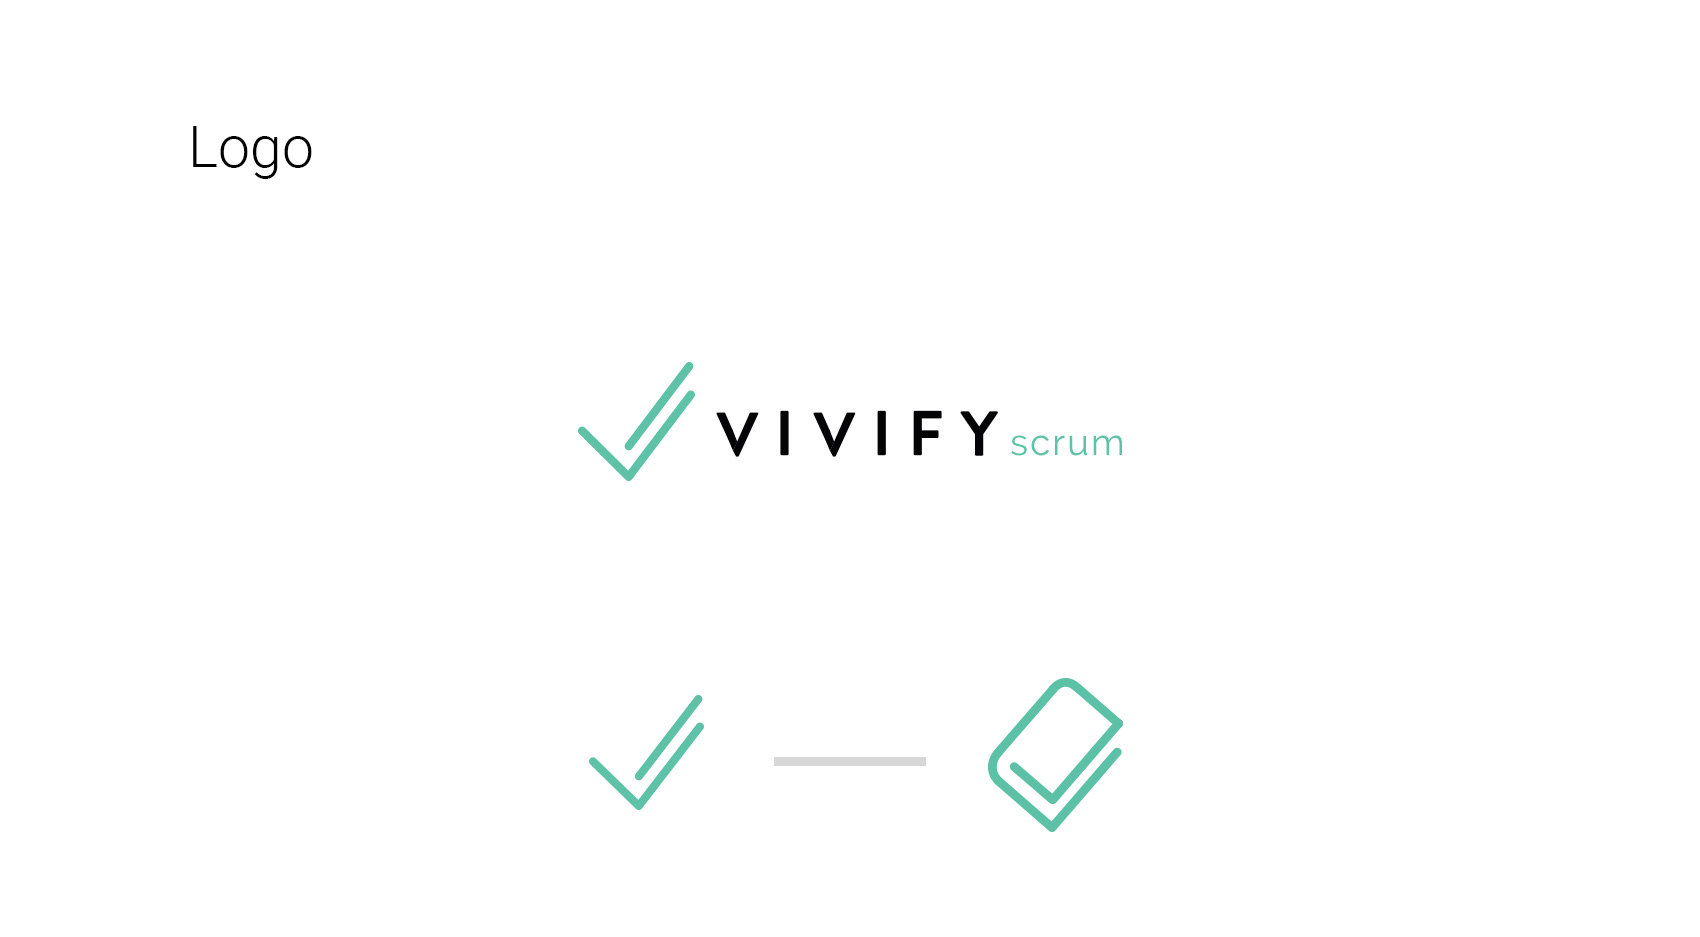 VivifyScrum EDU logo development